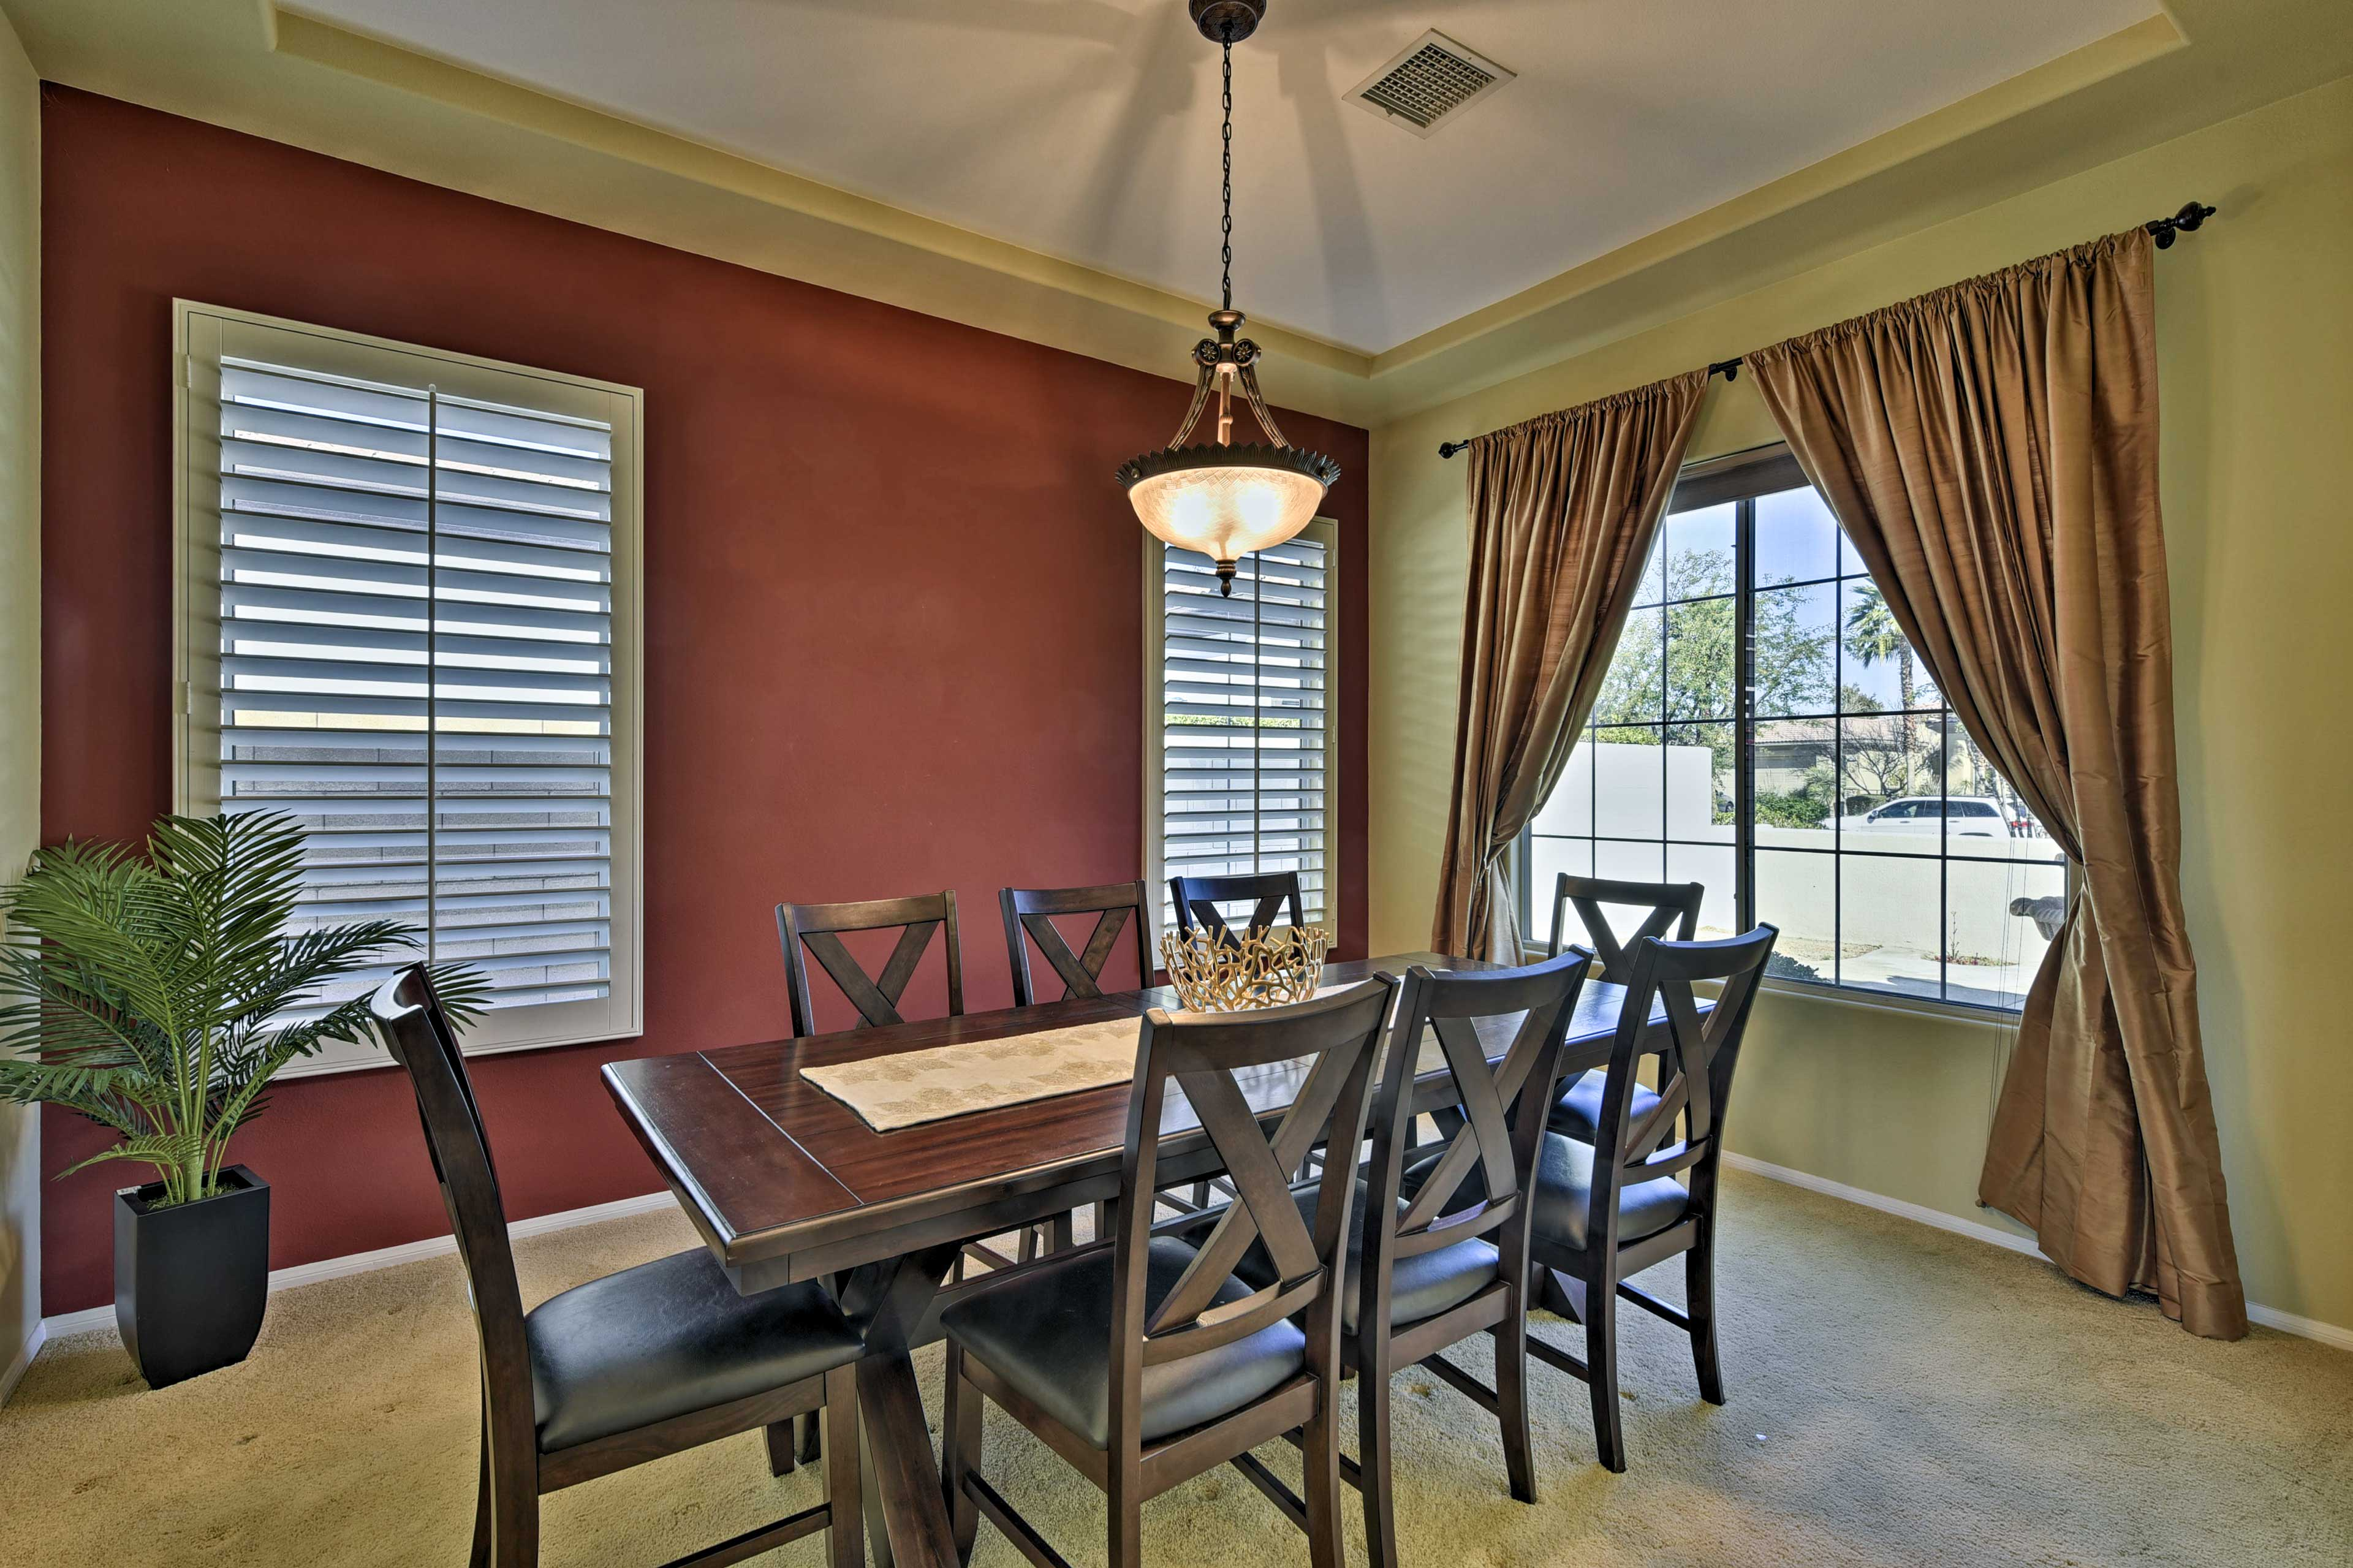 For formal occasions, dine in the dining room.